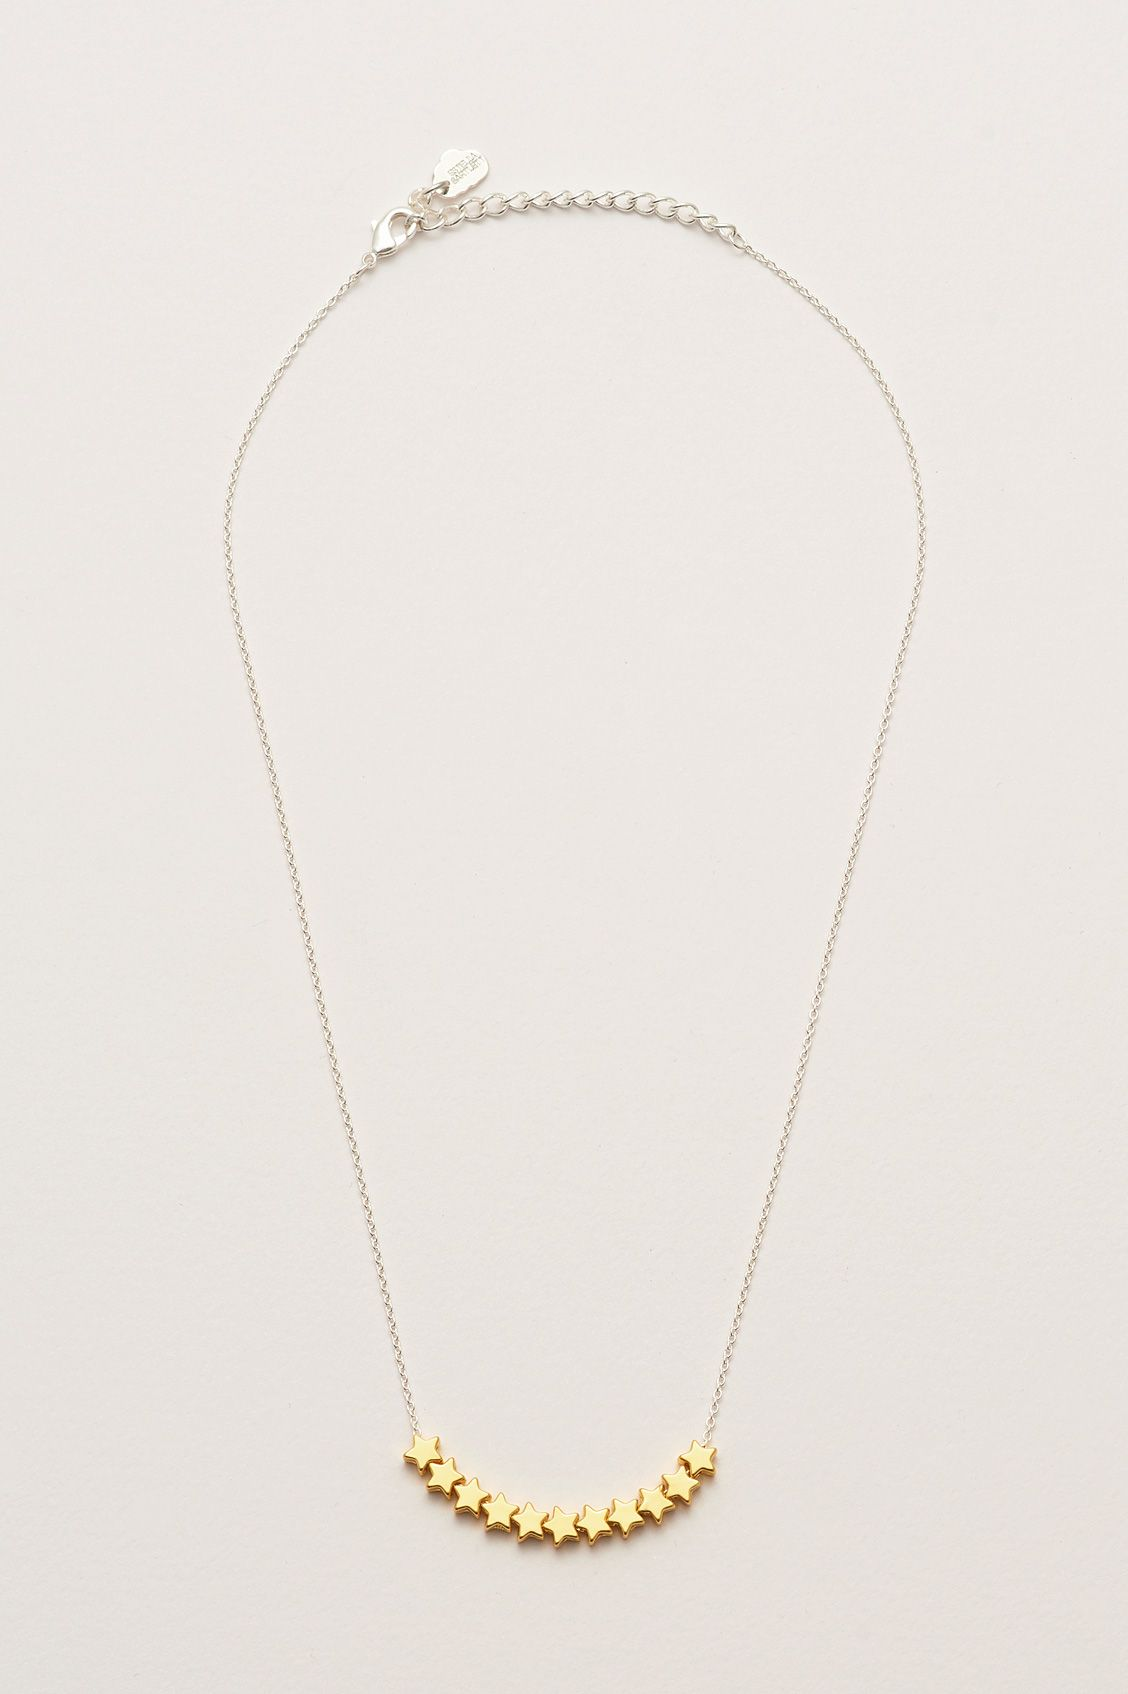 Estella Bartlett Necklace - Starry Eyed Girl Gold & Silver